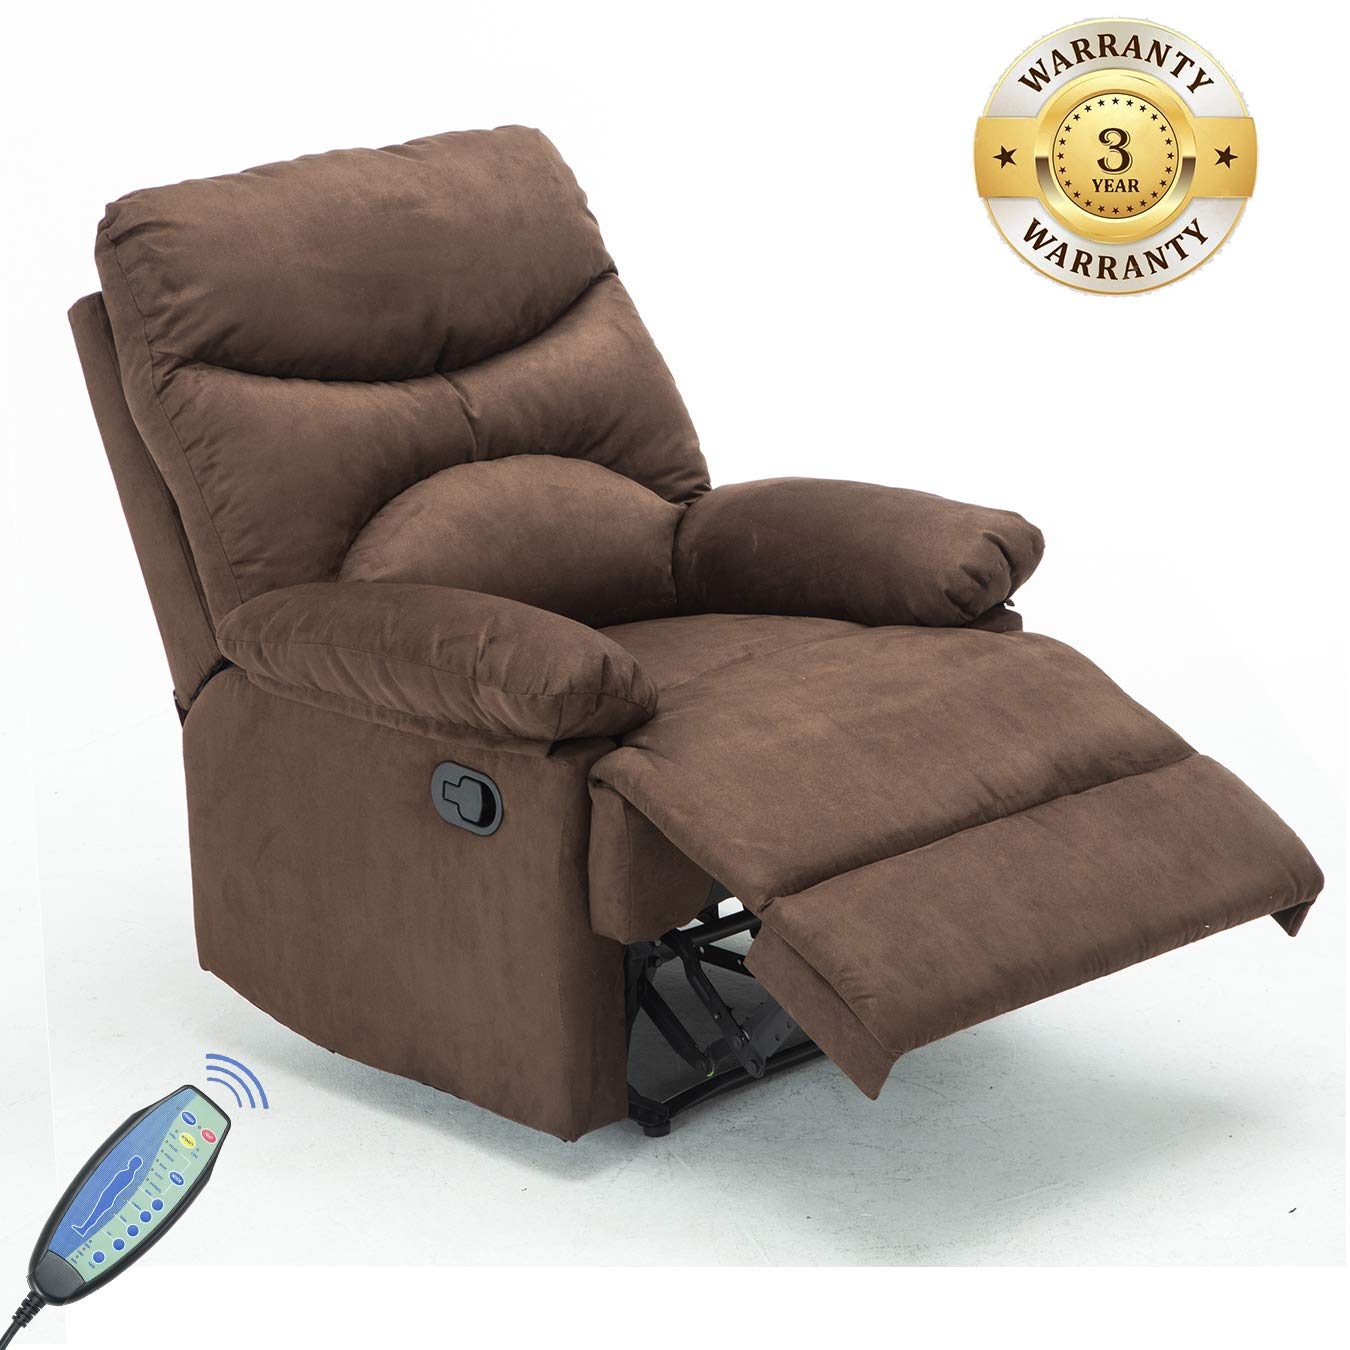 Windaze Recliner Chair, Massage Heat Lounge Sofa Chair Microfiber Ergonomic for Living Room Brown